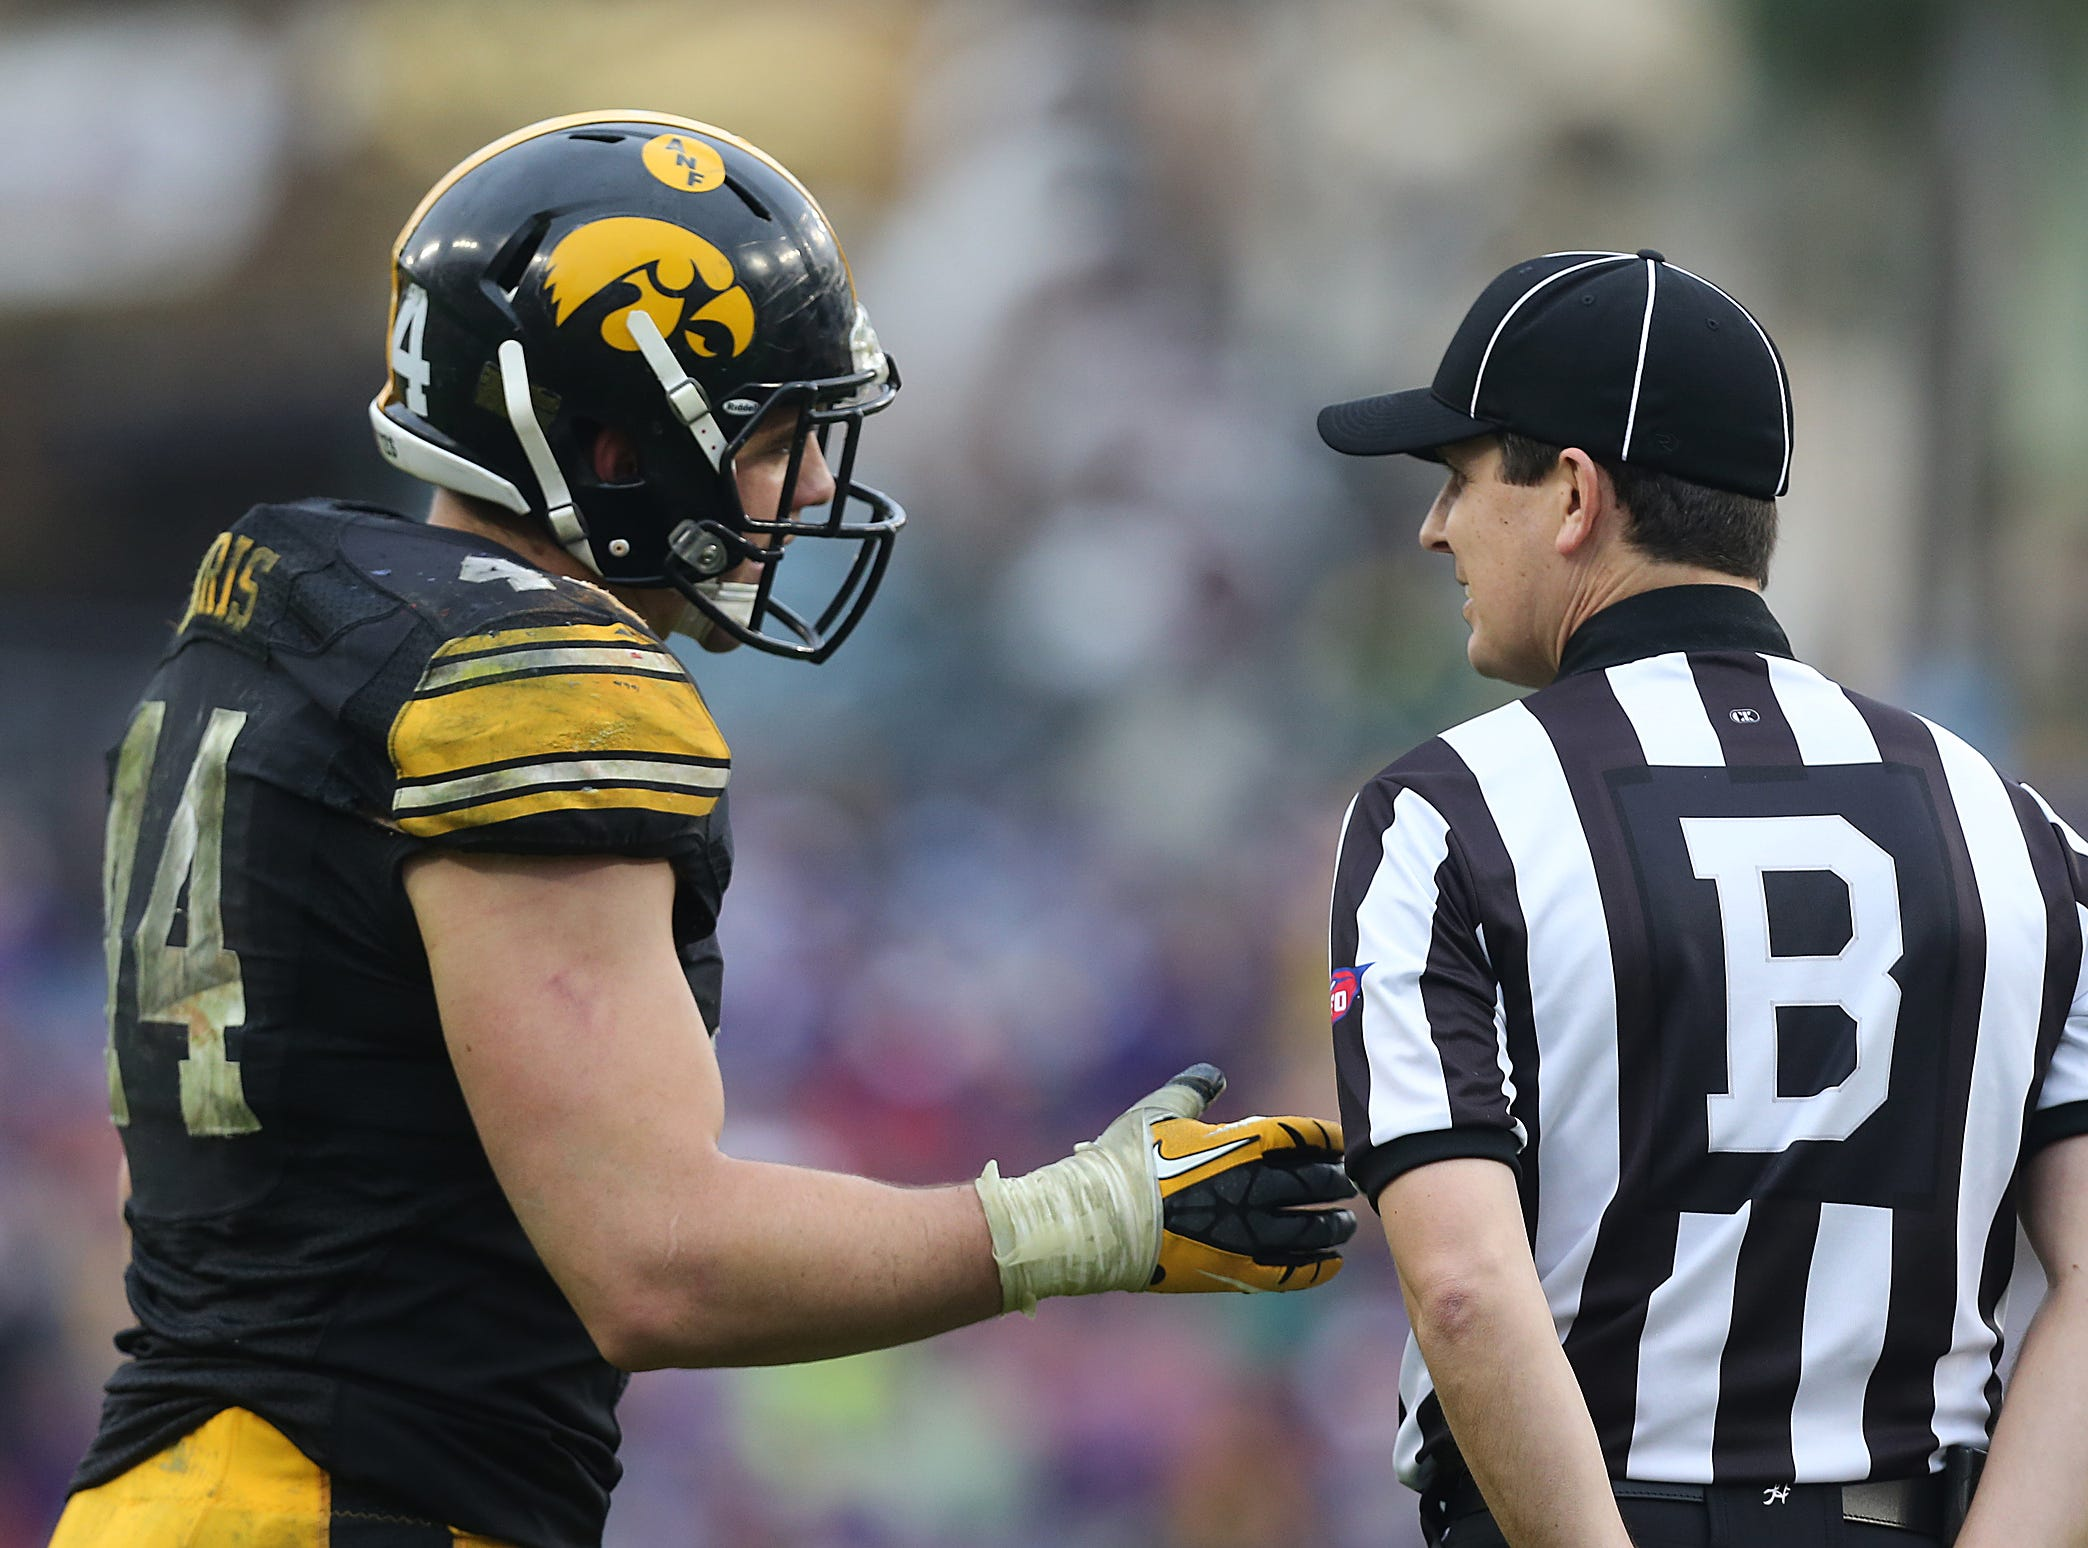 Iowa linebacker James Morris talks with a game official between plays against LSU in the Outback Bowl on Wednesday, Jan. 1, 2014, in Tampa, Florida. (Bryon Houlgrave/The Register)